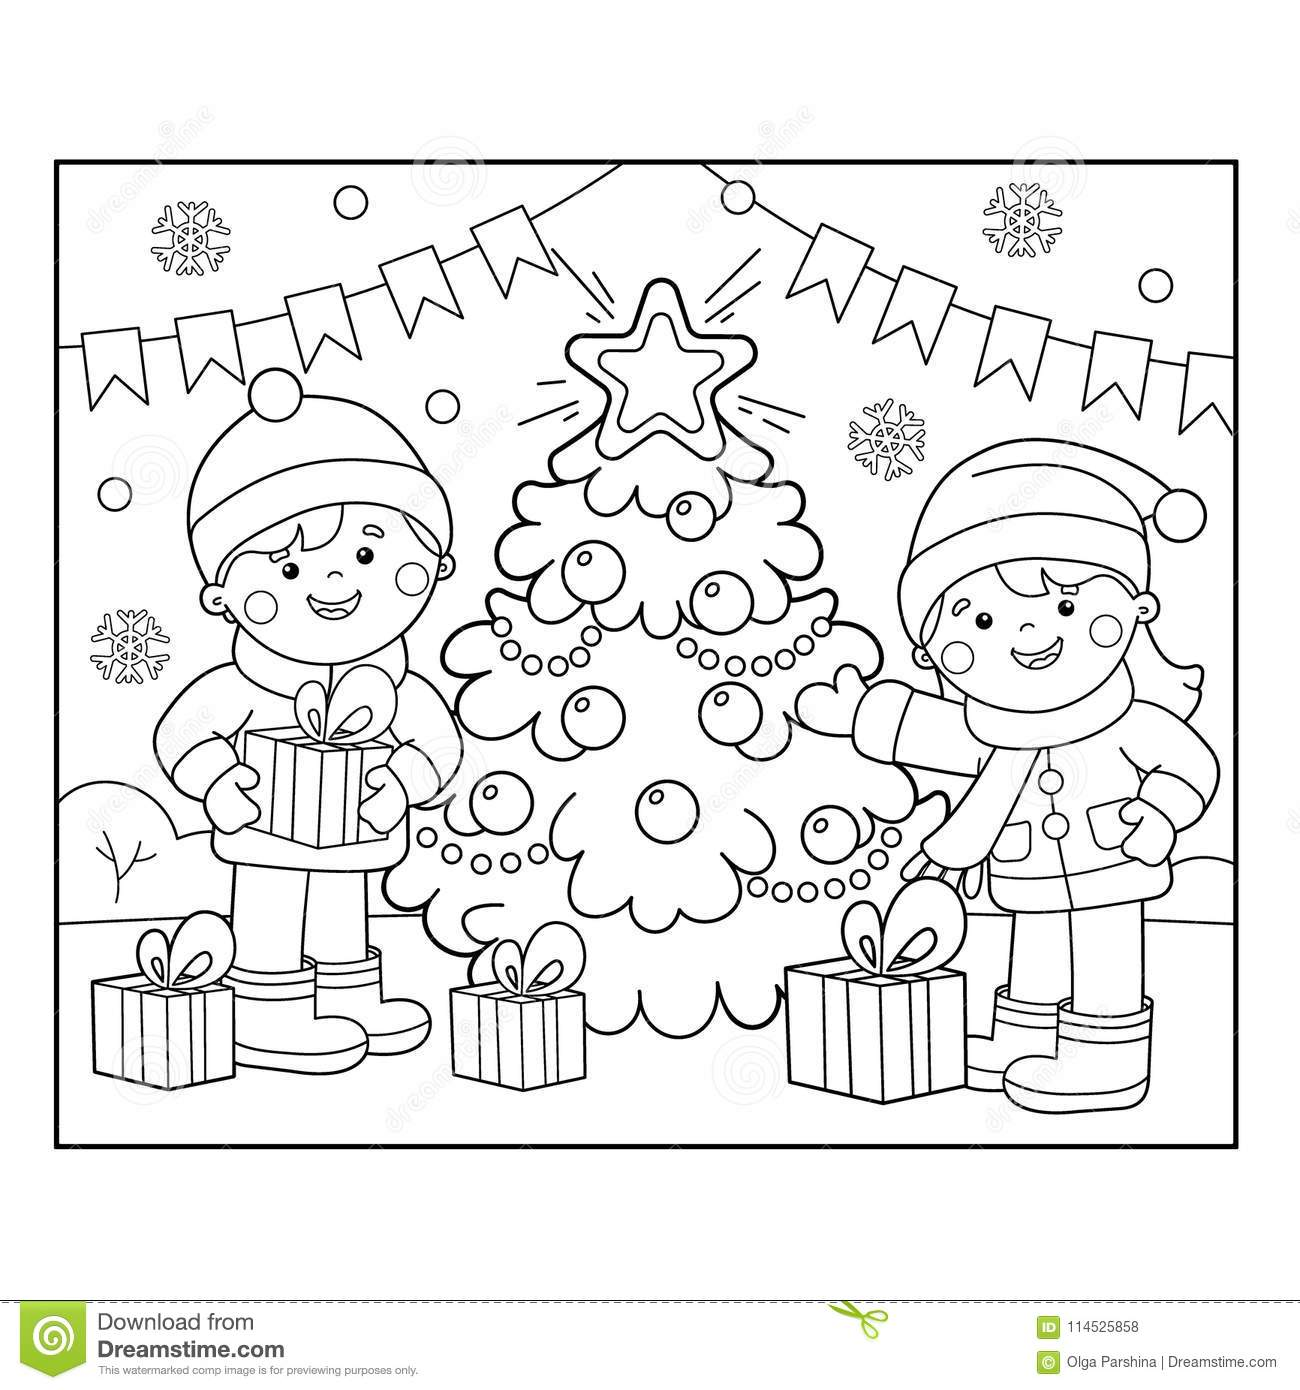 Coloring Page Outline Of Children With Ts At Christmas